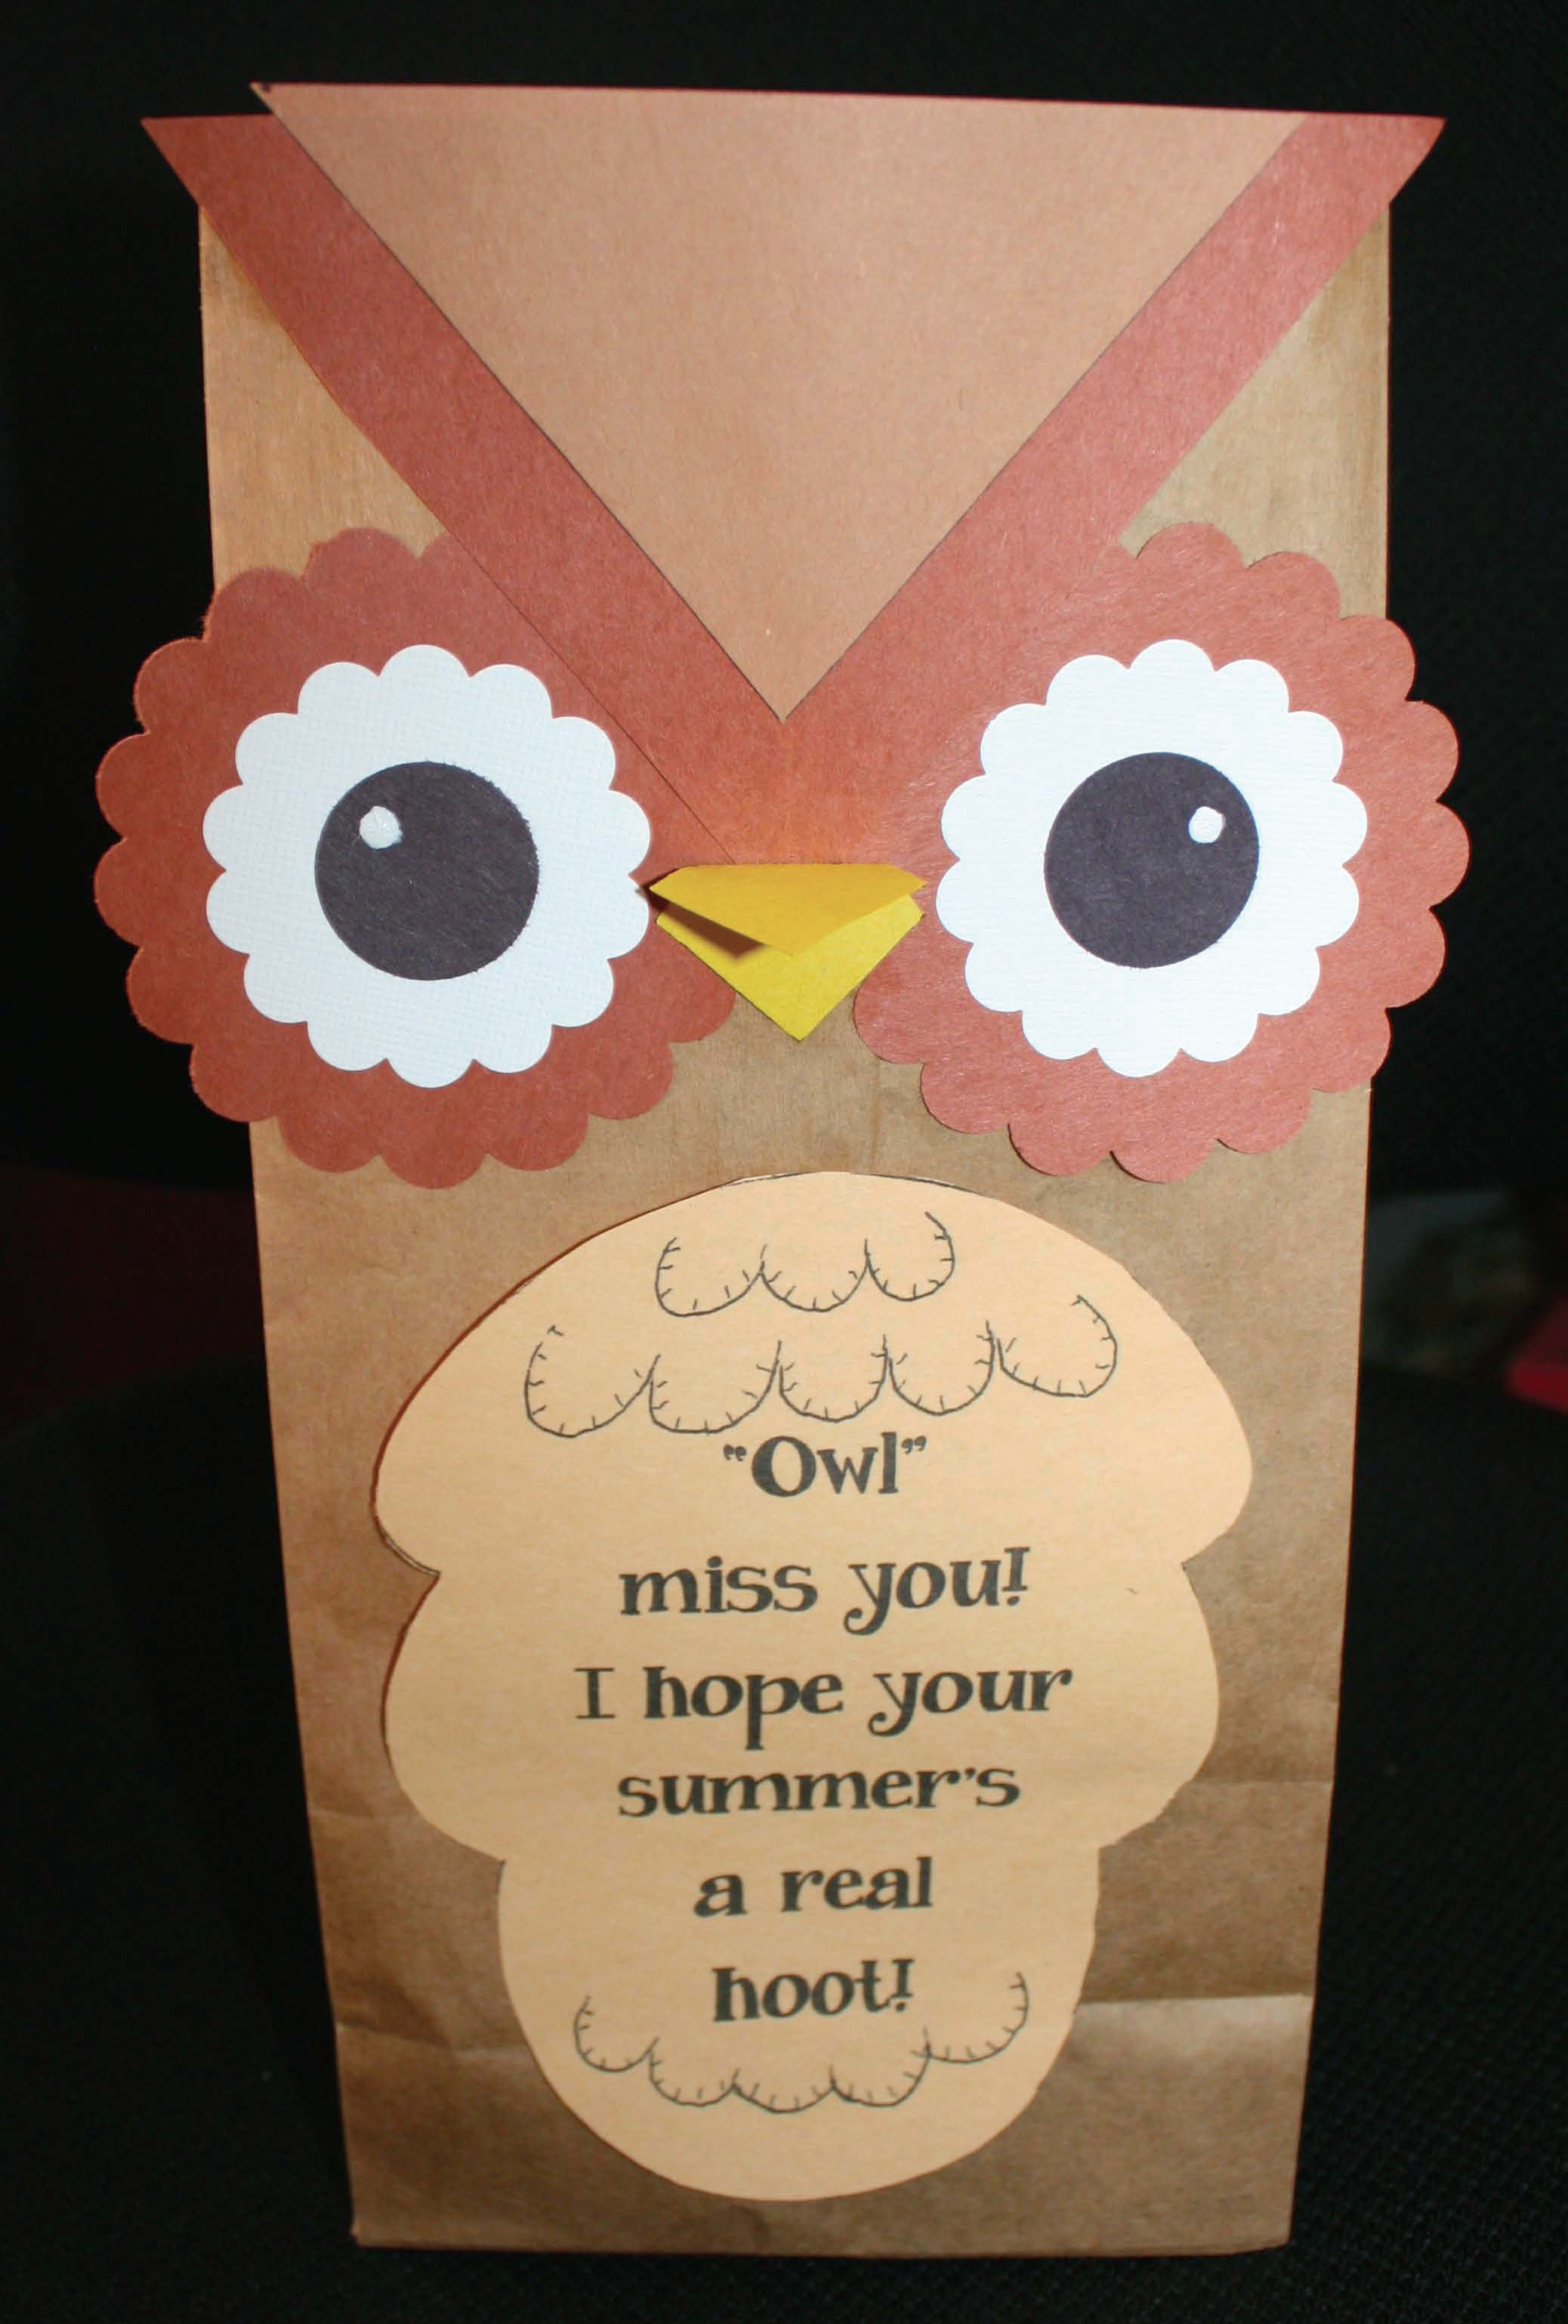 owl miss you activities, owl miss you crafts, owl crafts, owl paper bag puppets, paper bag puppets, end of the year activities, end of the year gifts, graduation gifts, treat bags, beginning of the year gifts, open house treat bags, first day of school treat bags, gift bags, treat bags, graduation gifts, owl puppets, owl crafts, owl miss,